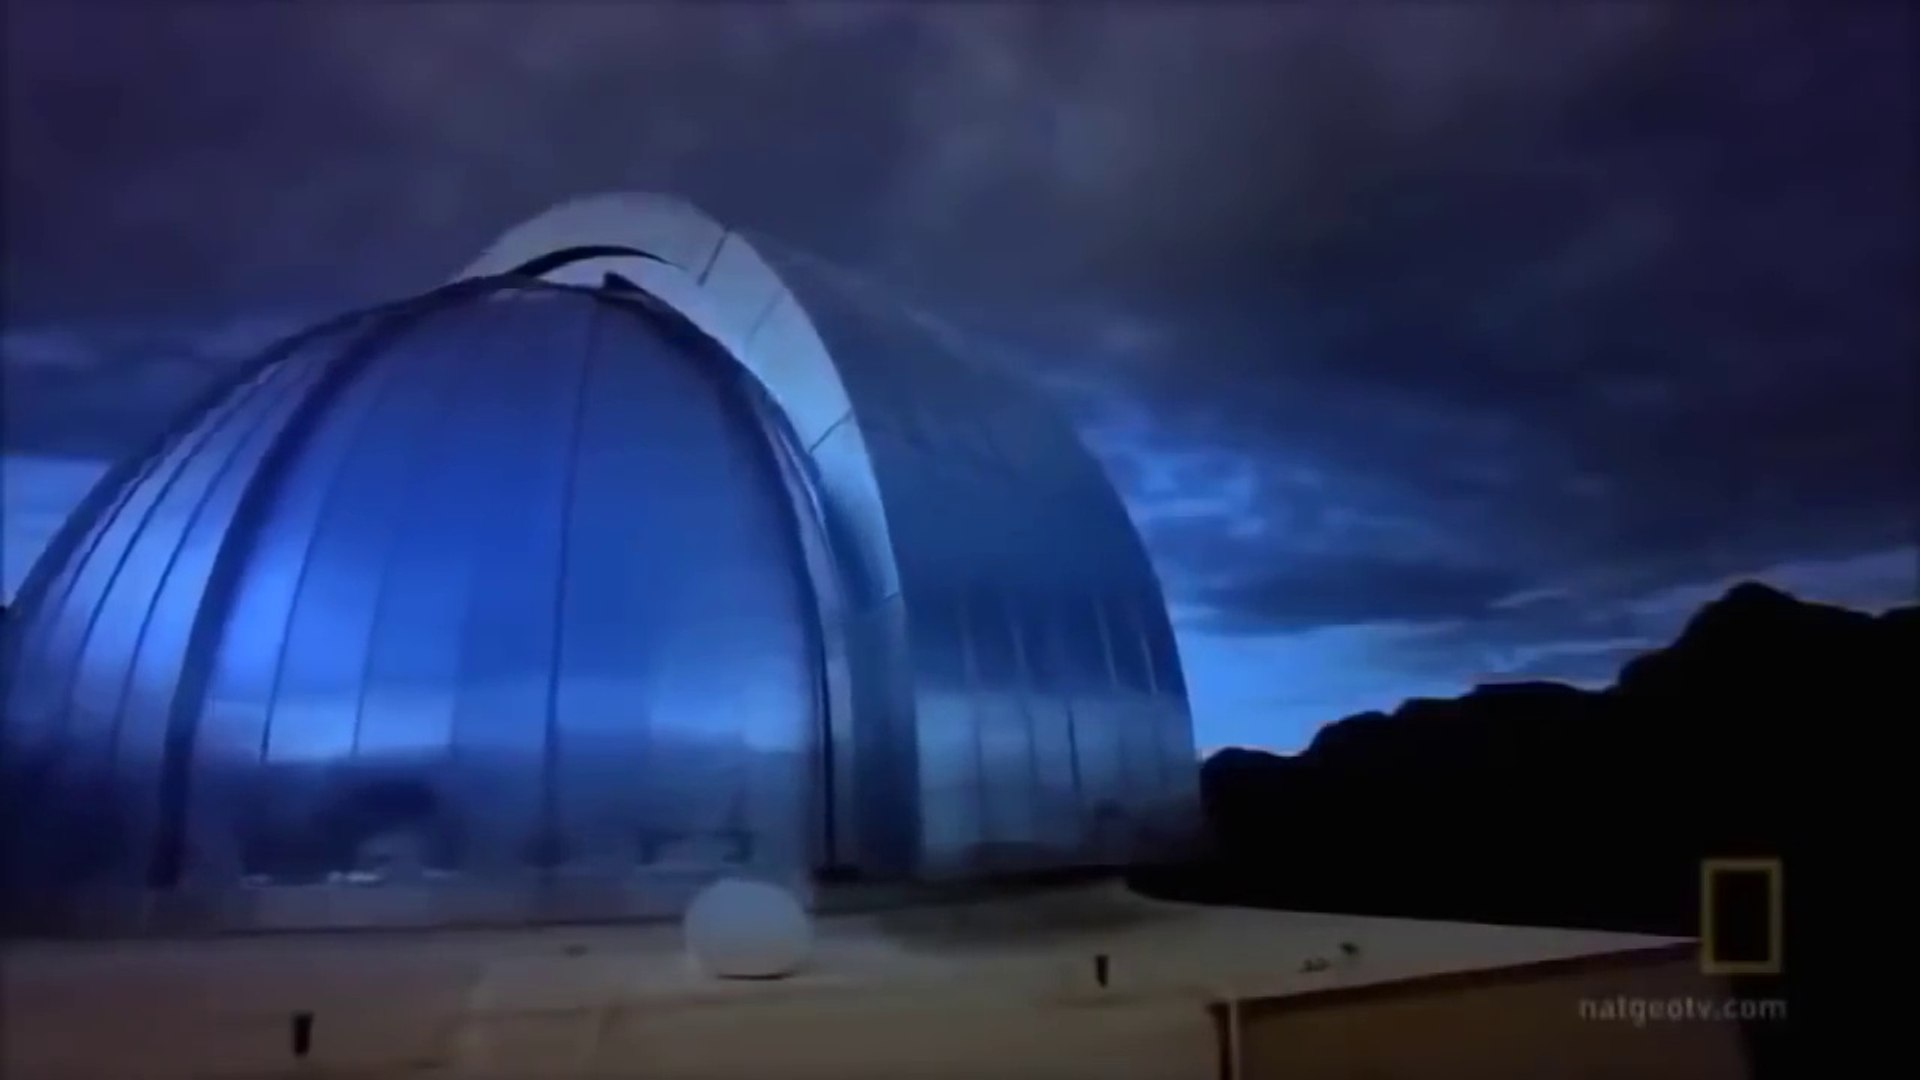 2018 Documentary || How the Universe Works || The Milky Way Galaxy || National Geographic Documentar